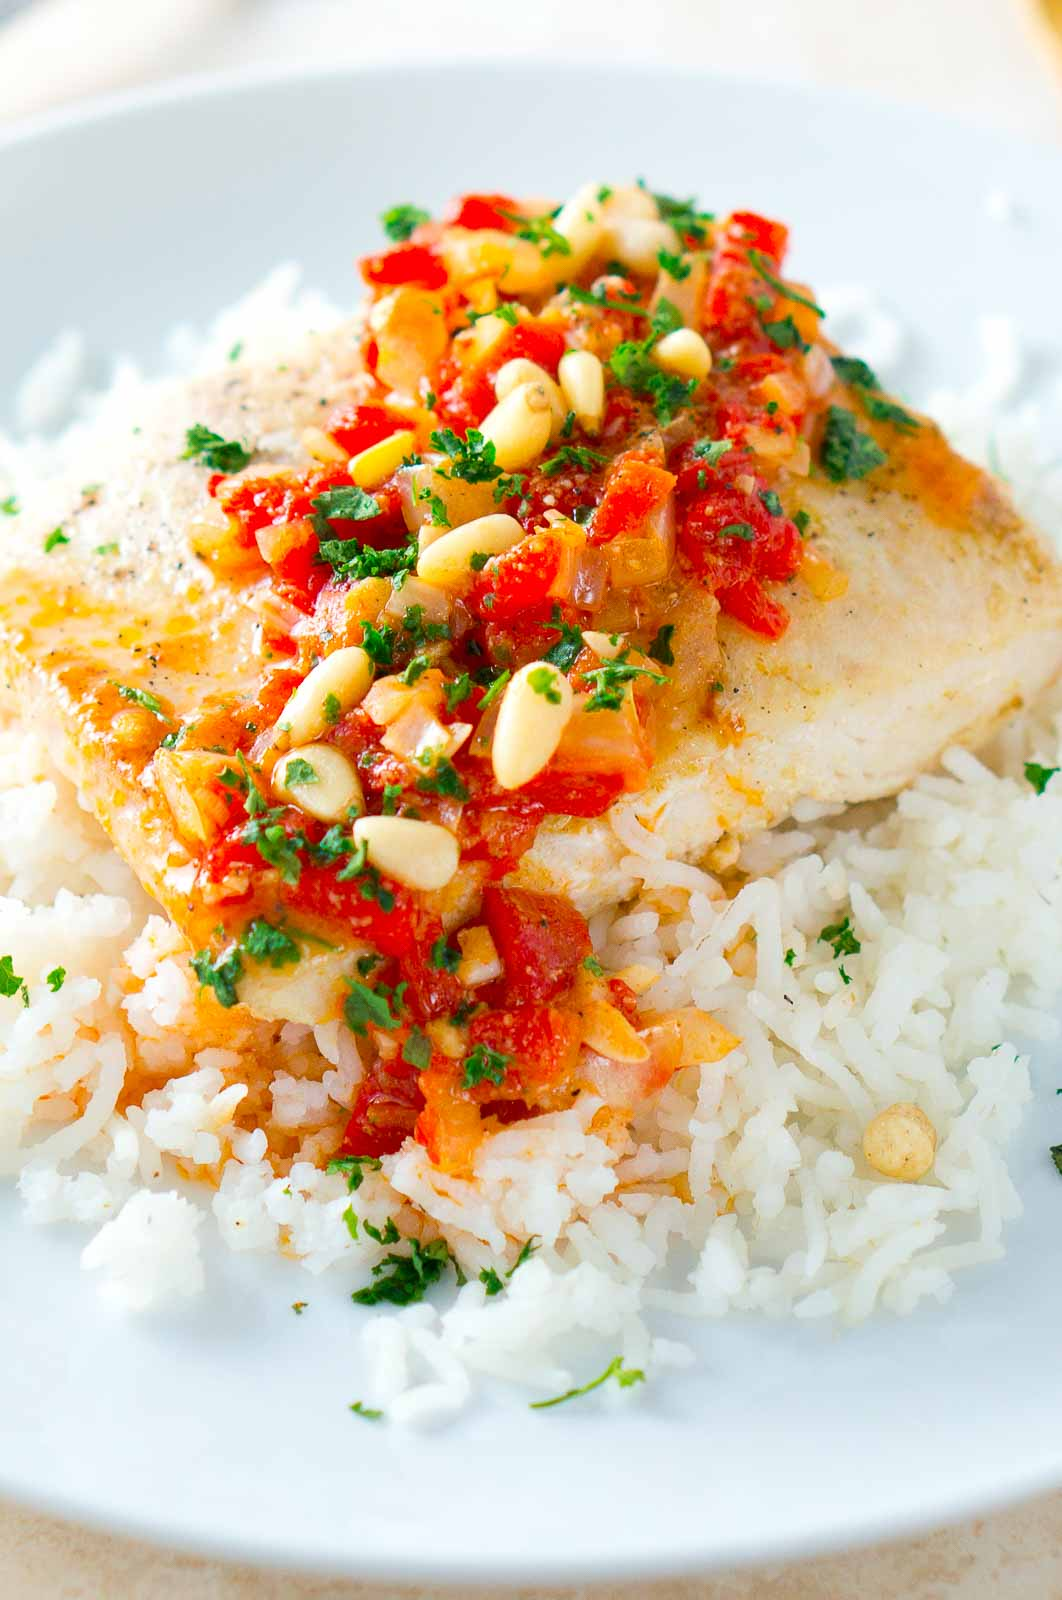 Mahi Mahi is cooked to perfection and served on a bed of fragrant jasmine rice with a warm and delicious roasted pepper butter sauce.